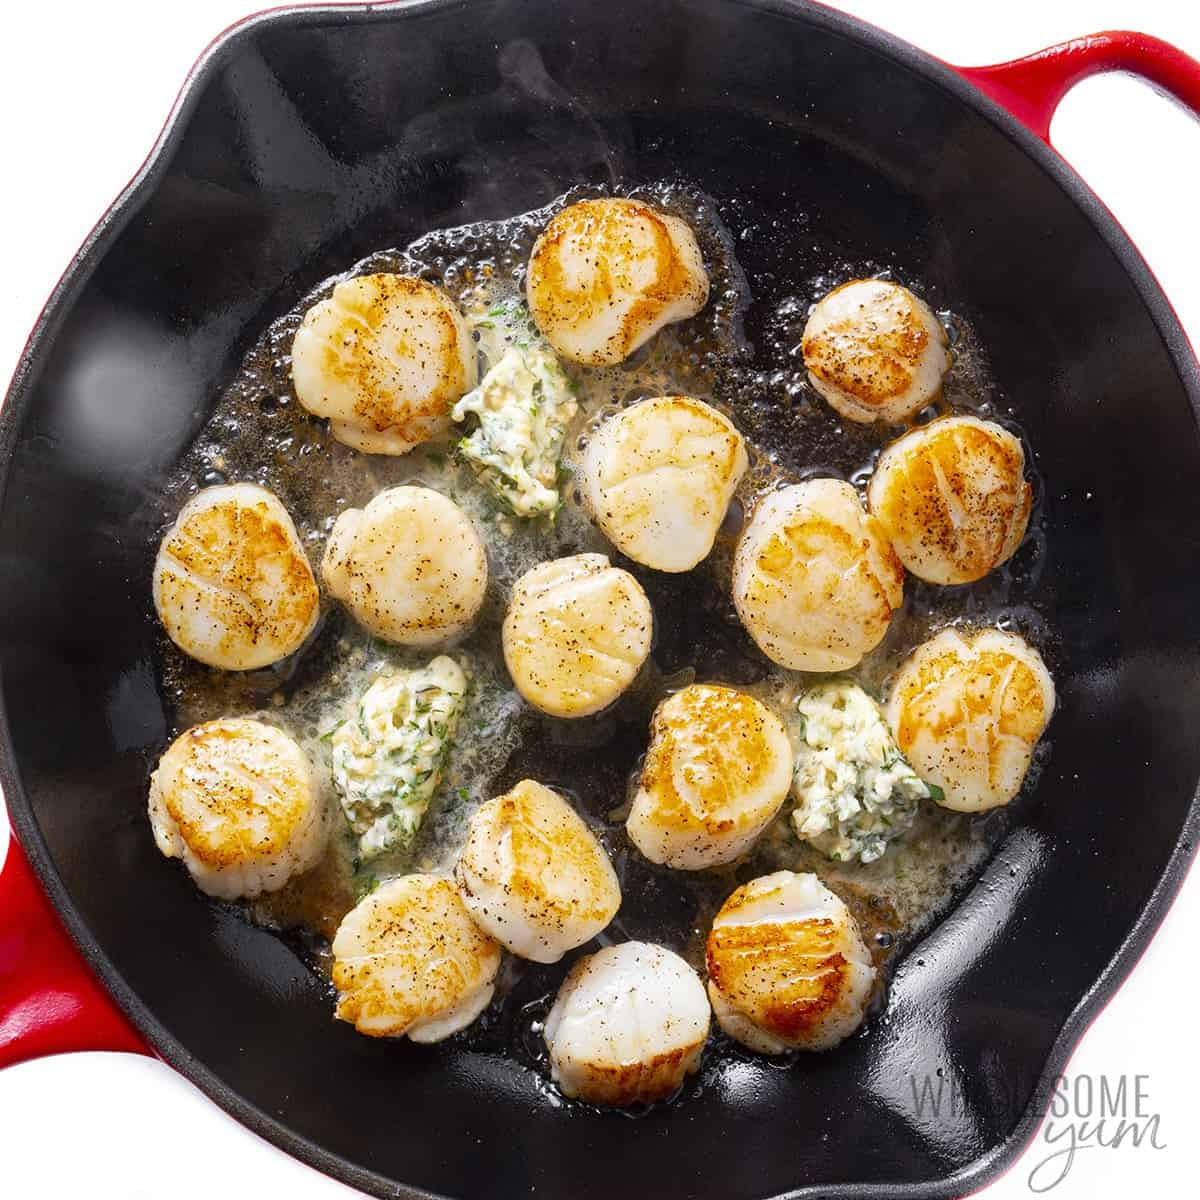 Scallops with garlic butter in skillet